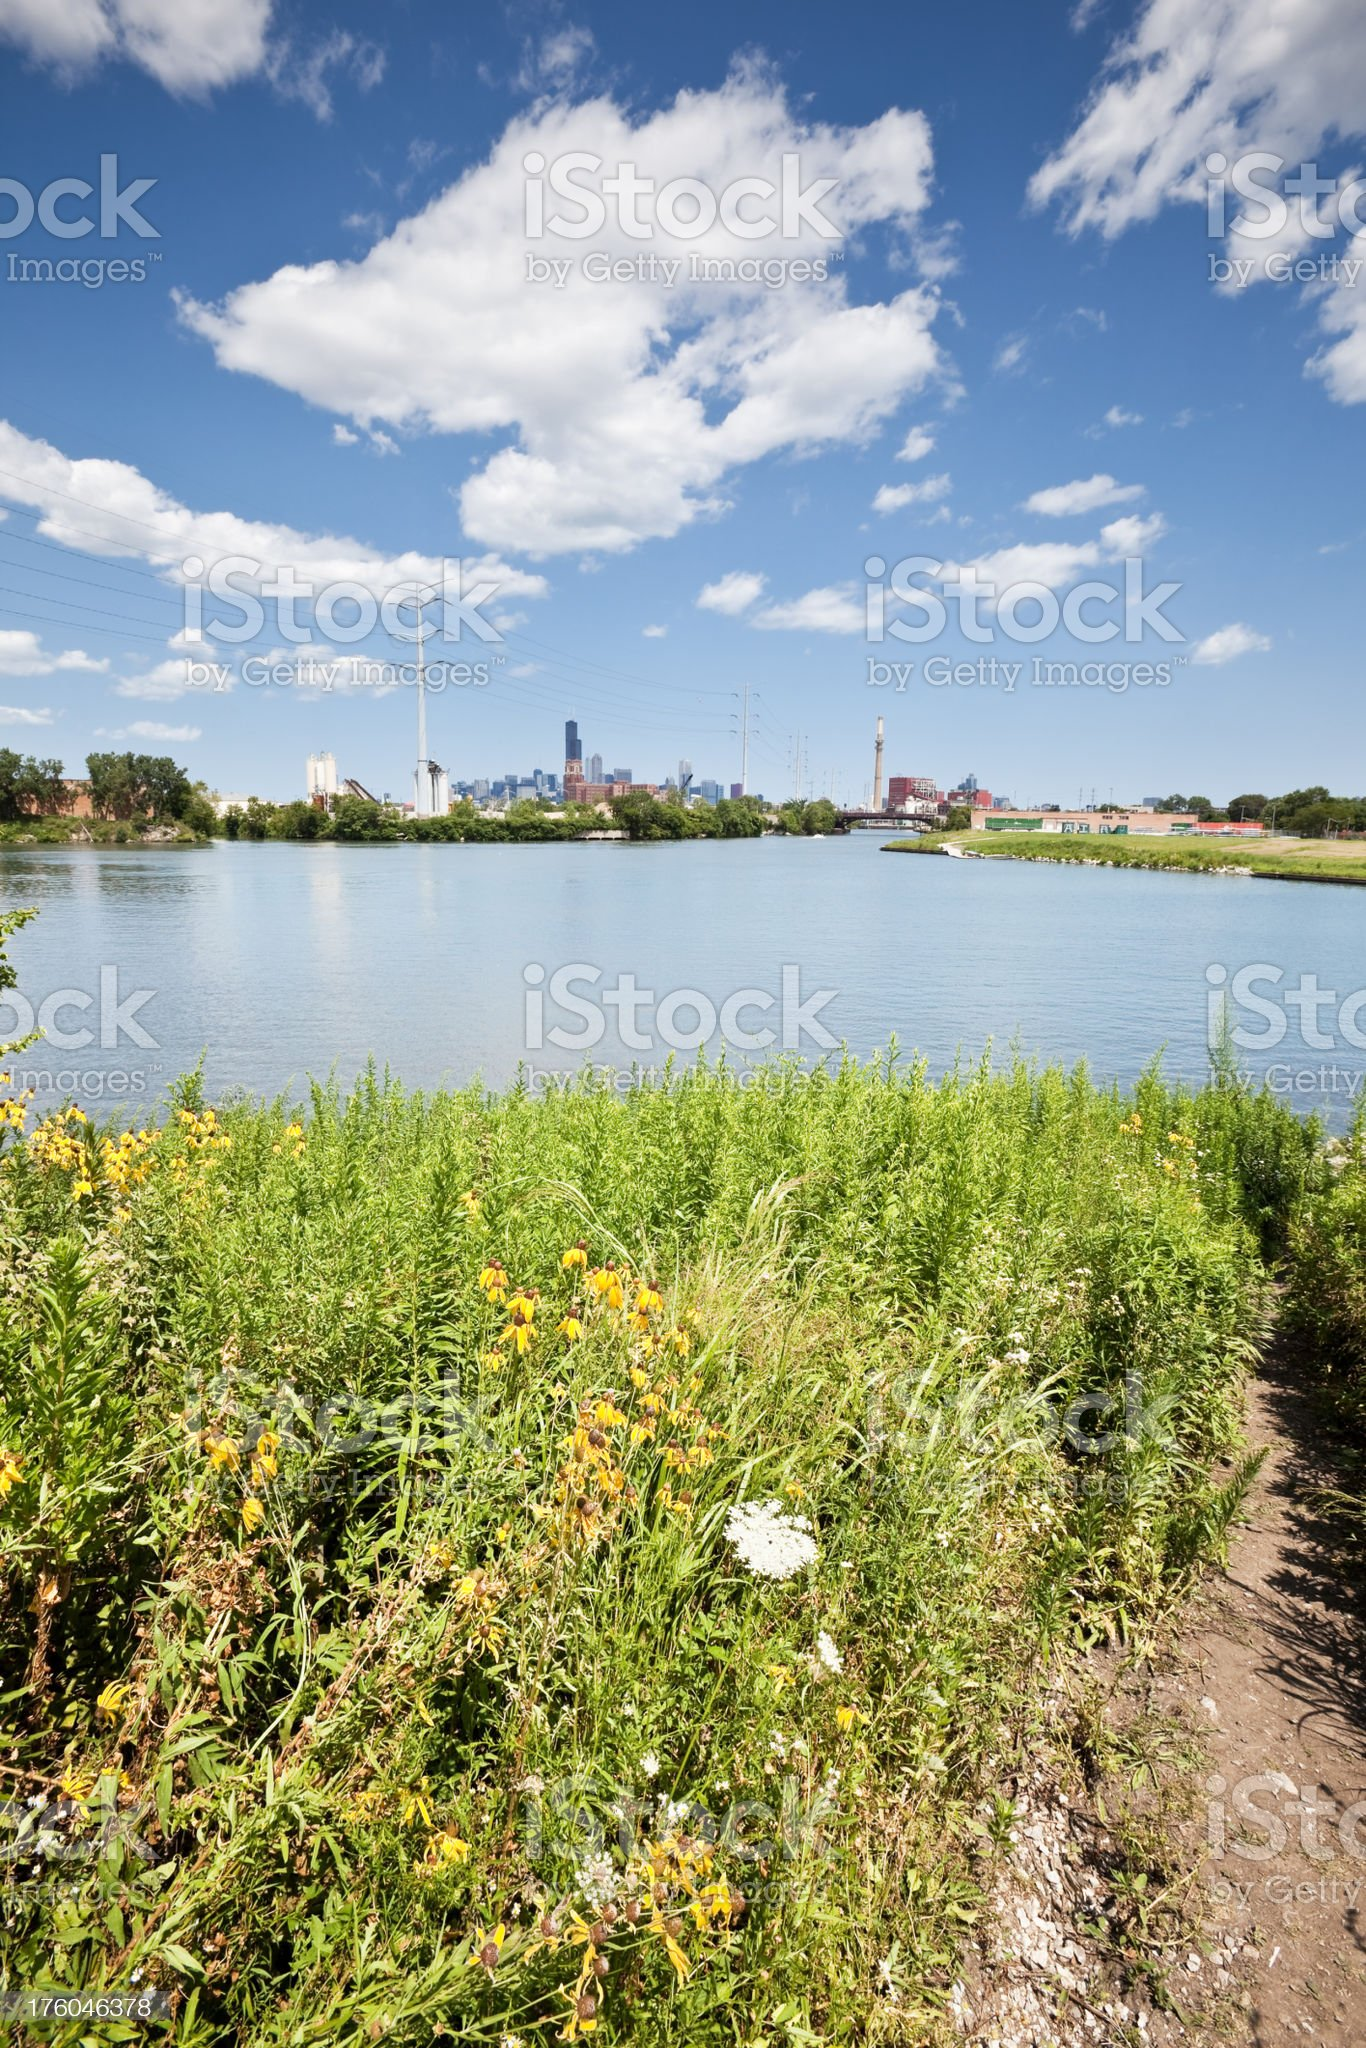 Chicago Prairie, River and Skyline royalty-free stock photo